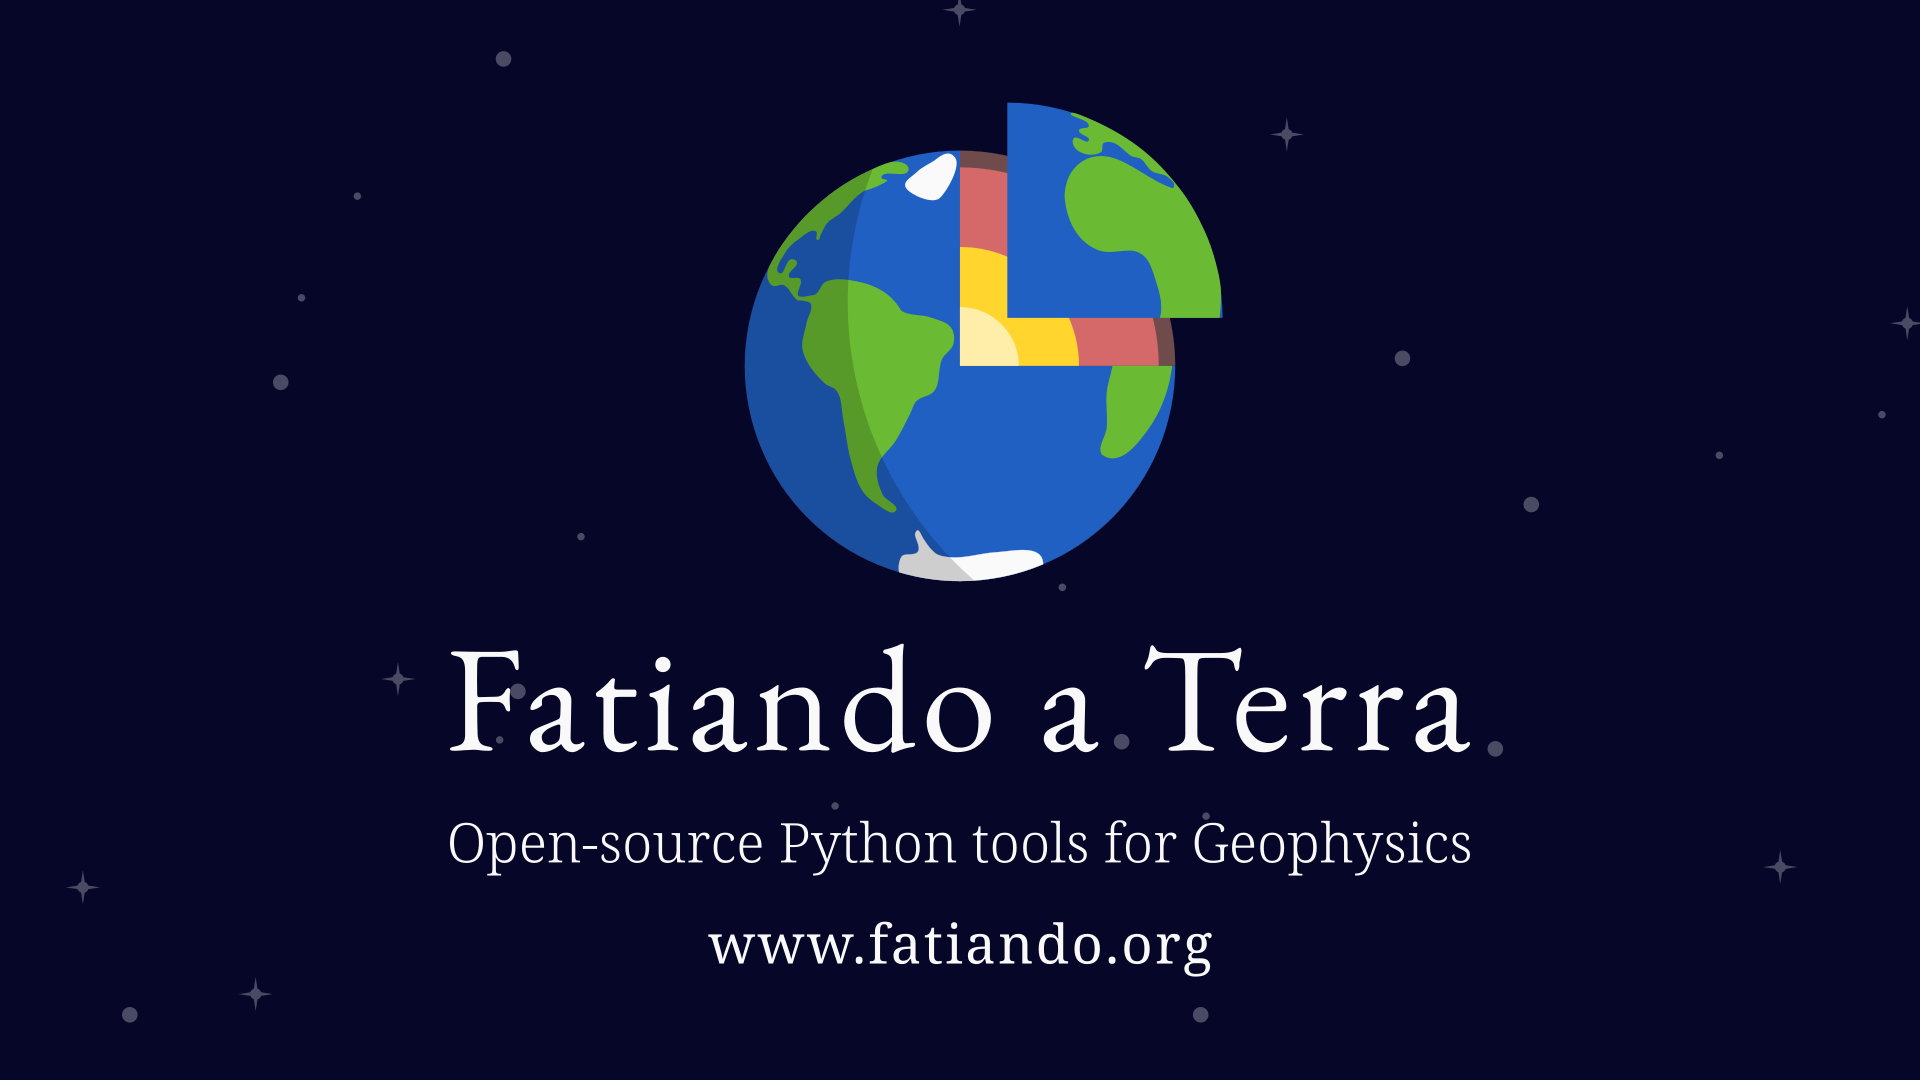 Fatiando a Terra is the main open-source software project on which I work. We develop Python tools for geophysics: modelling, inversion, data processing, and more.